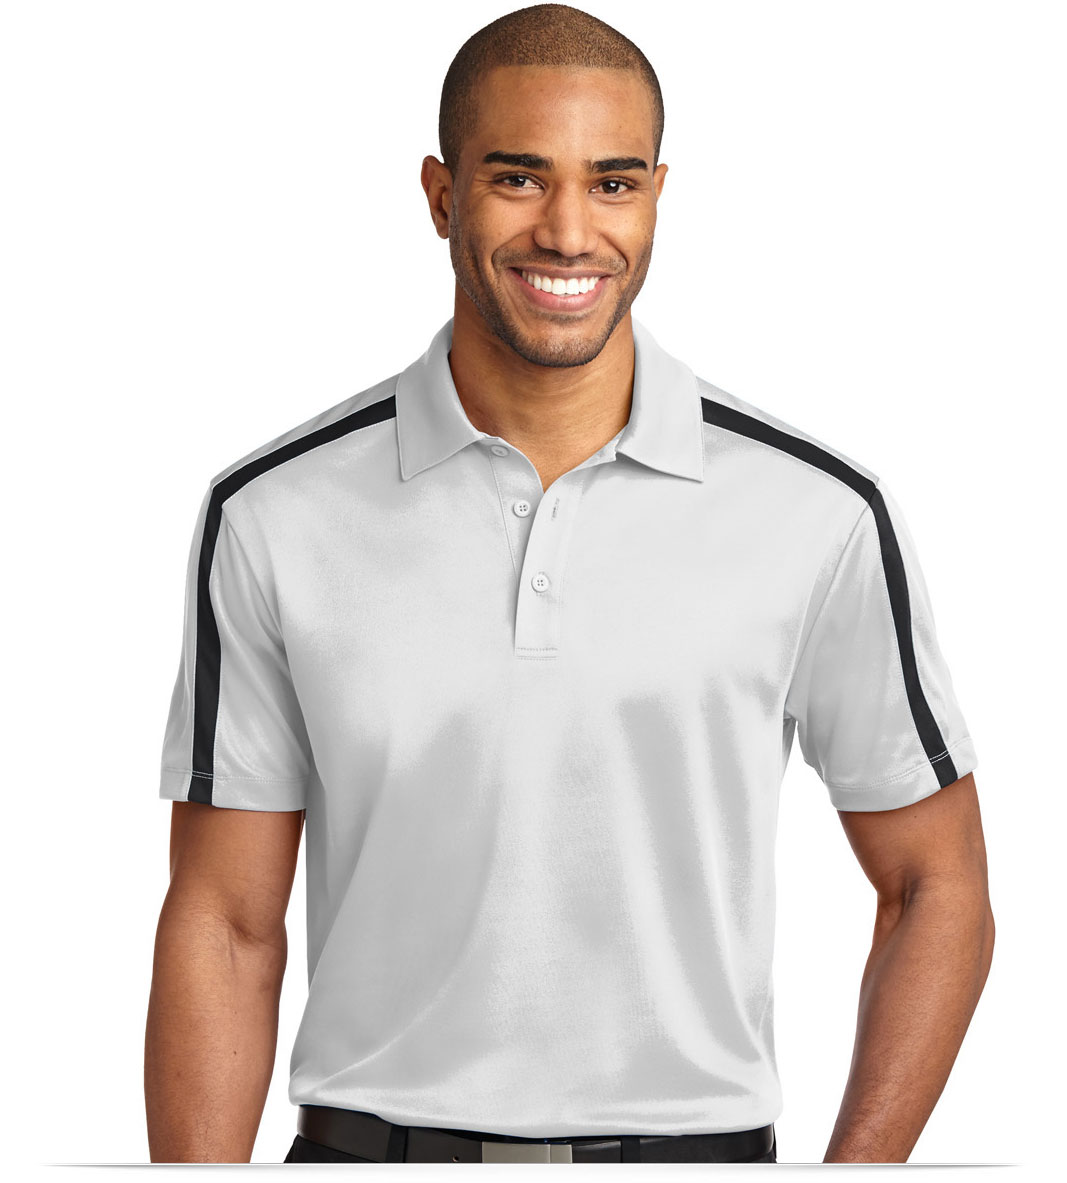 Design embroidered customized dri fit stripe polo shirt online for Custom adidas dri fit shirts